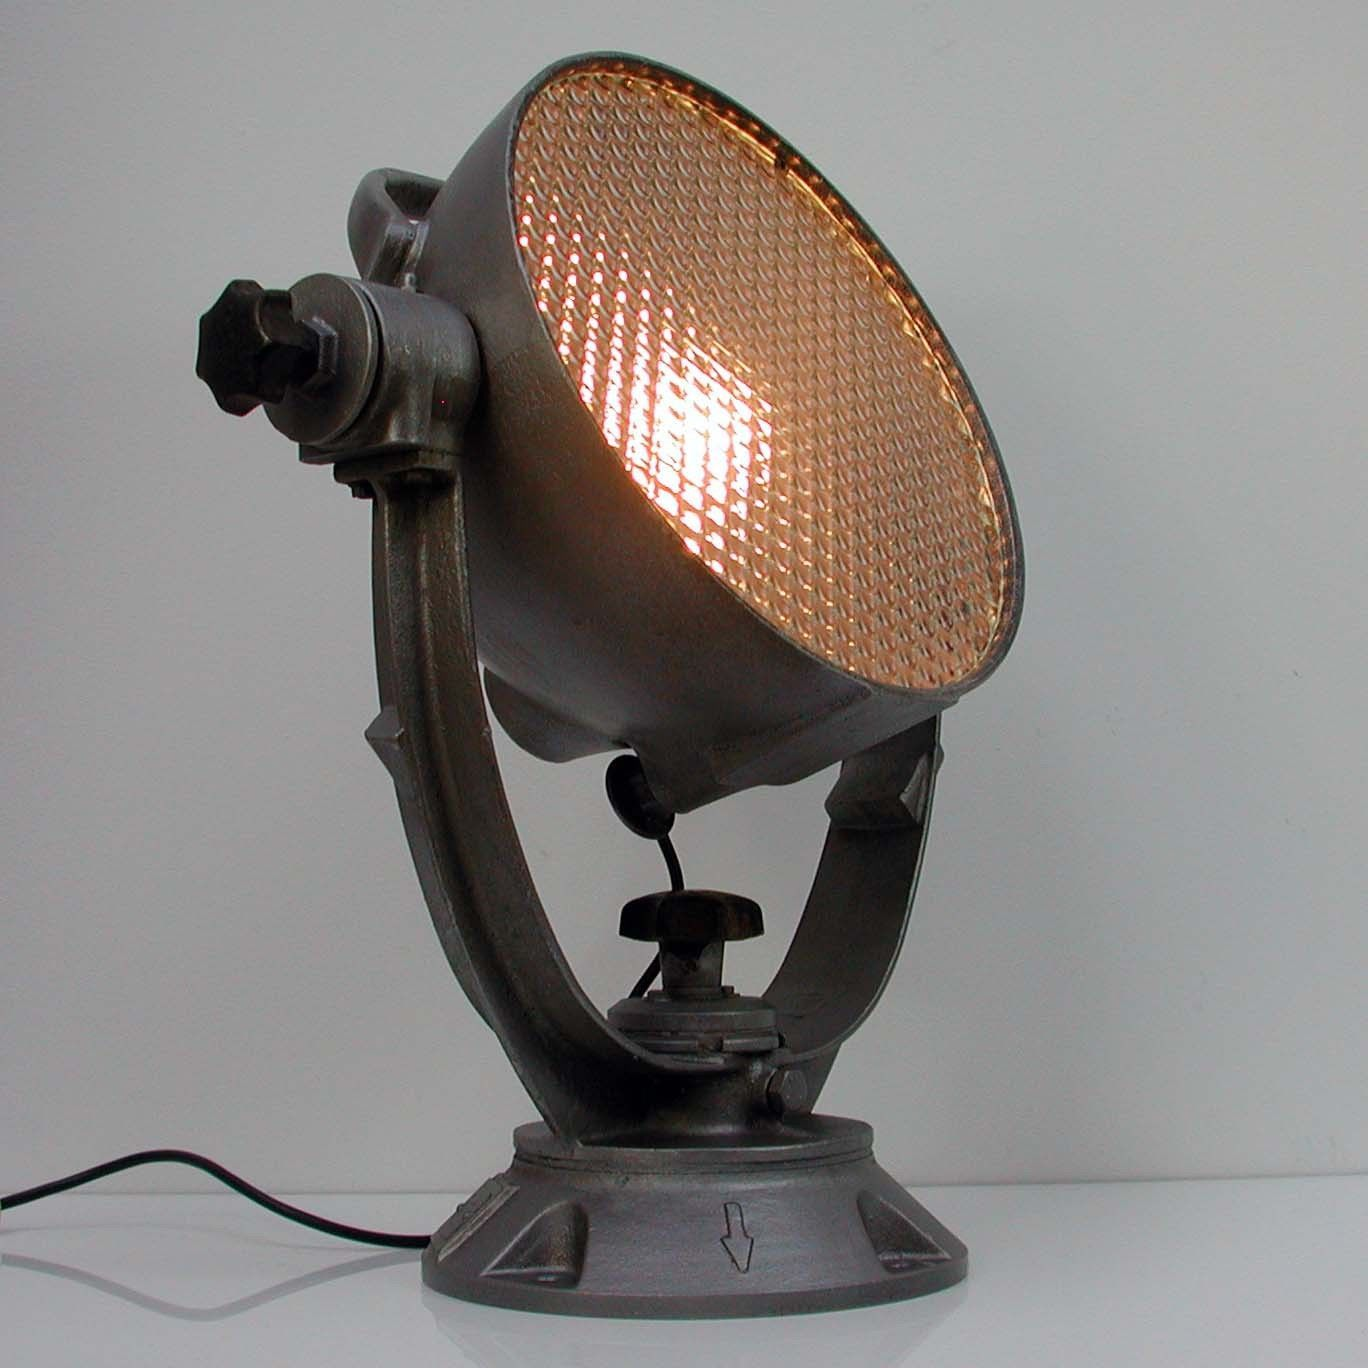 Vintage 1940s 1950s German Bauhaus Industrial Spot Light Theater Lamp Lamp Industrial Spotlight Light